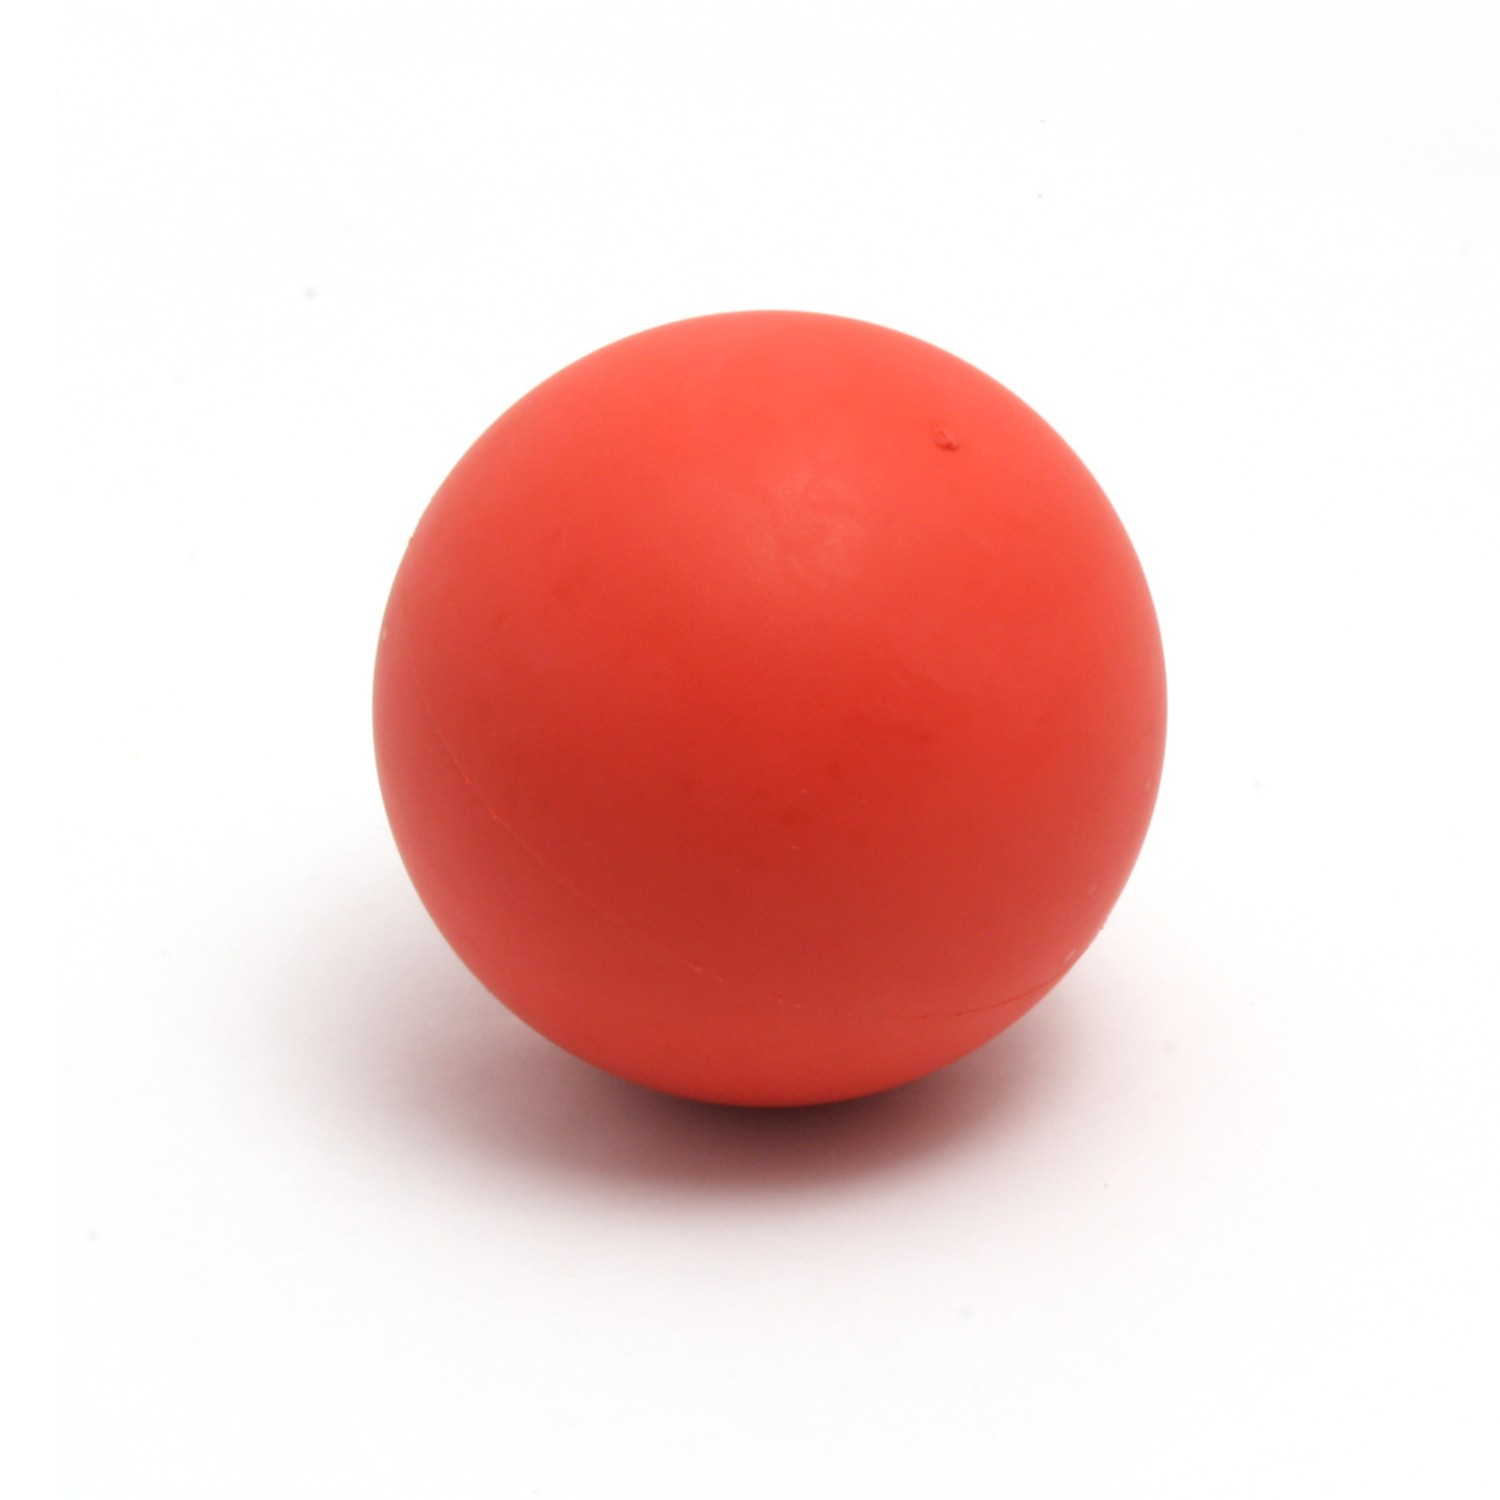 Red Ball Clipart.